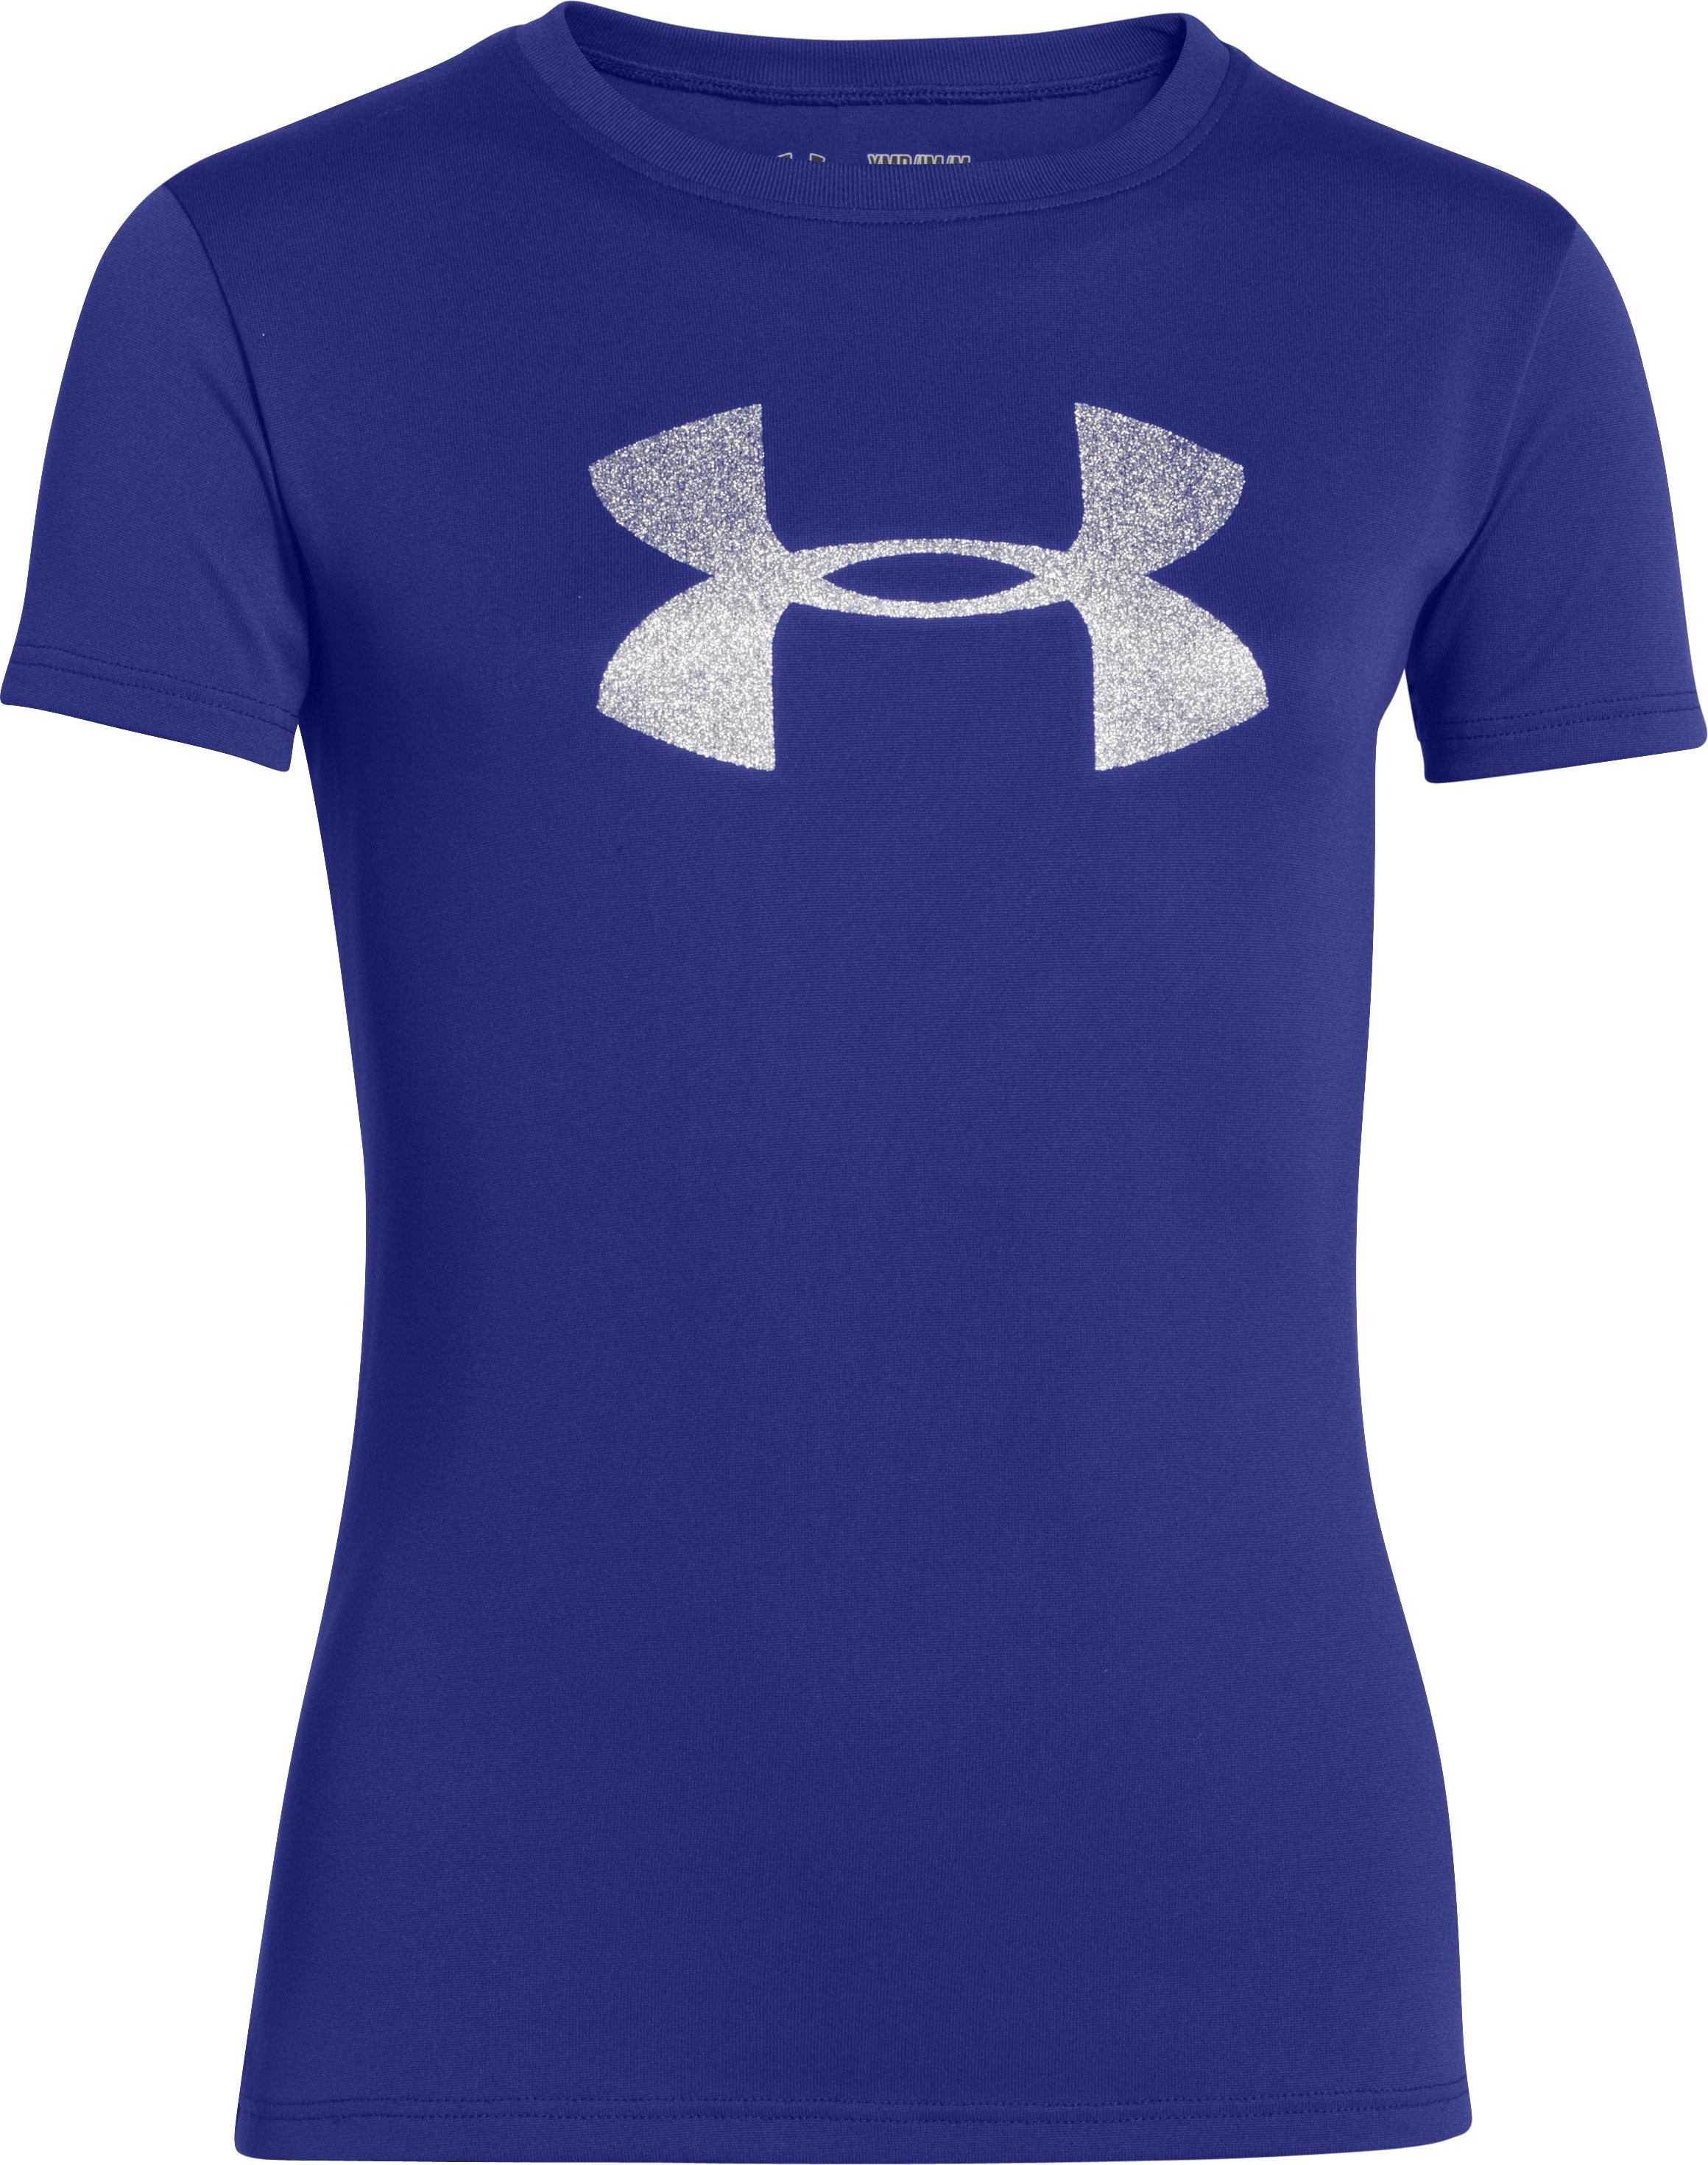 Girls' UA Big Logo Short Sleeve T-Shirt, SIBERIAN IRIS